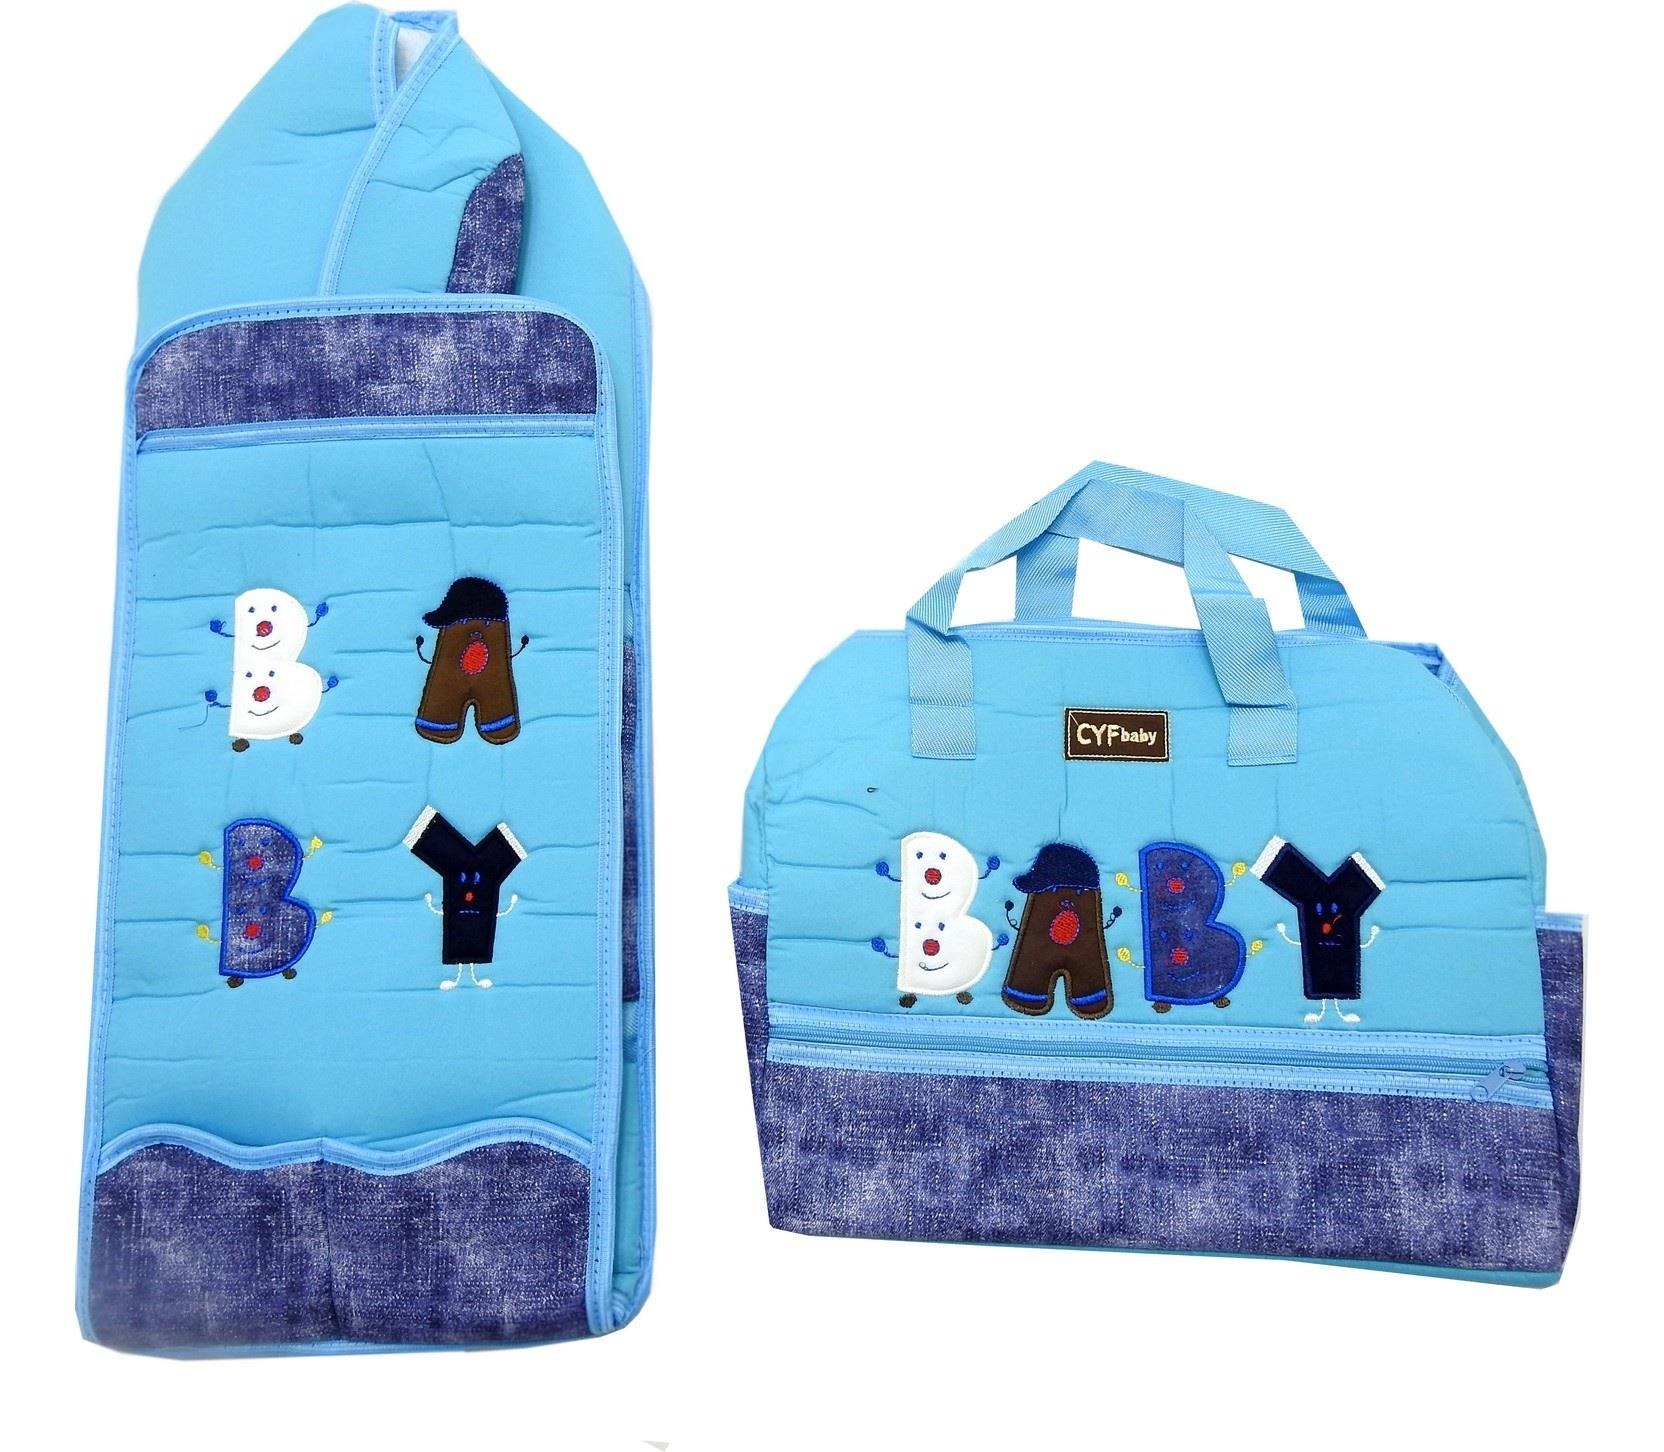 WHOLESALE BABY PRINT DESIGN CARE BAG AND CARRYCOT DOUBLE SET FOR BABY